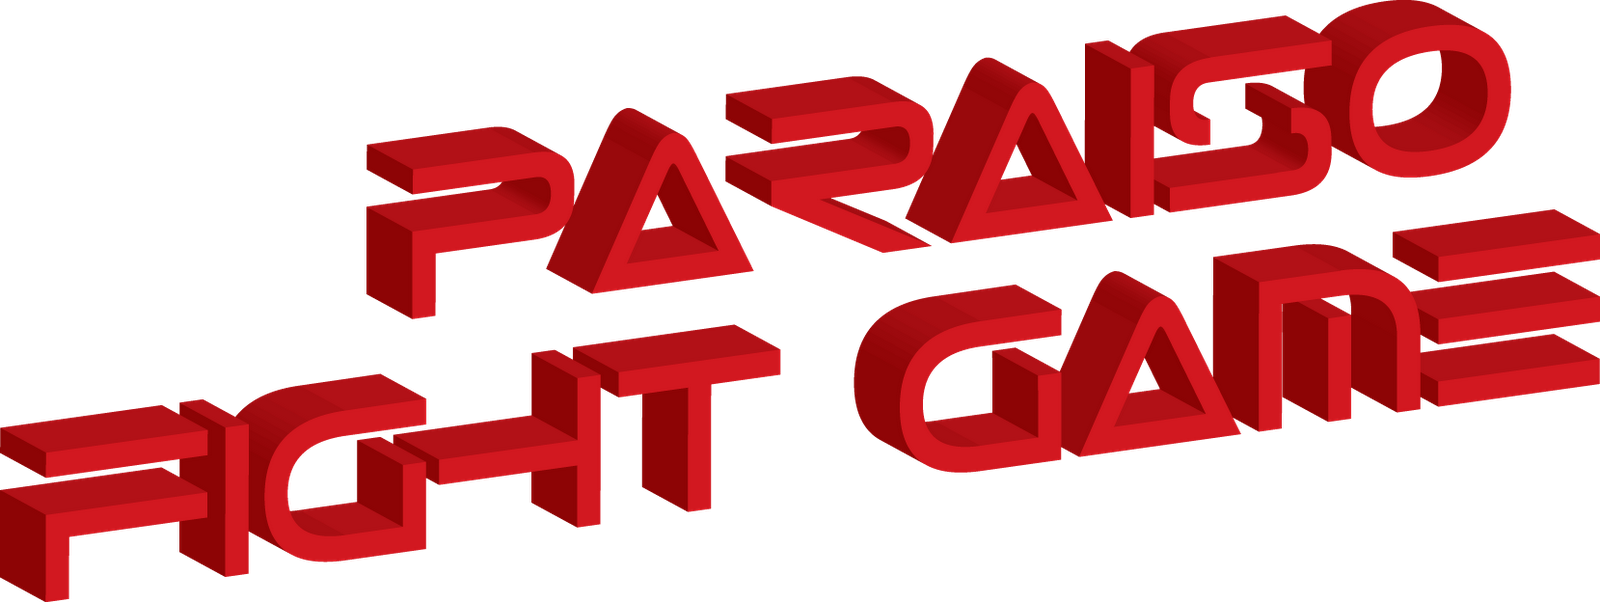 Paraiso Fight Game